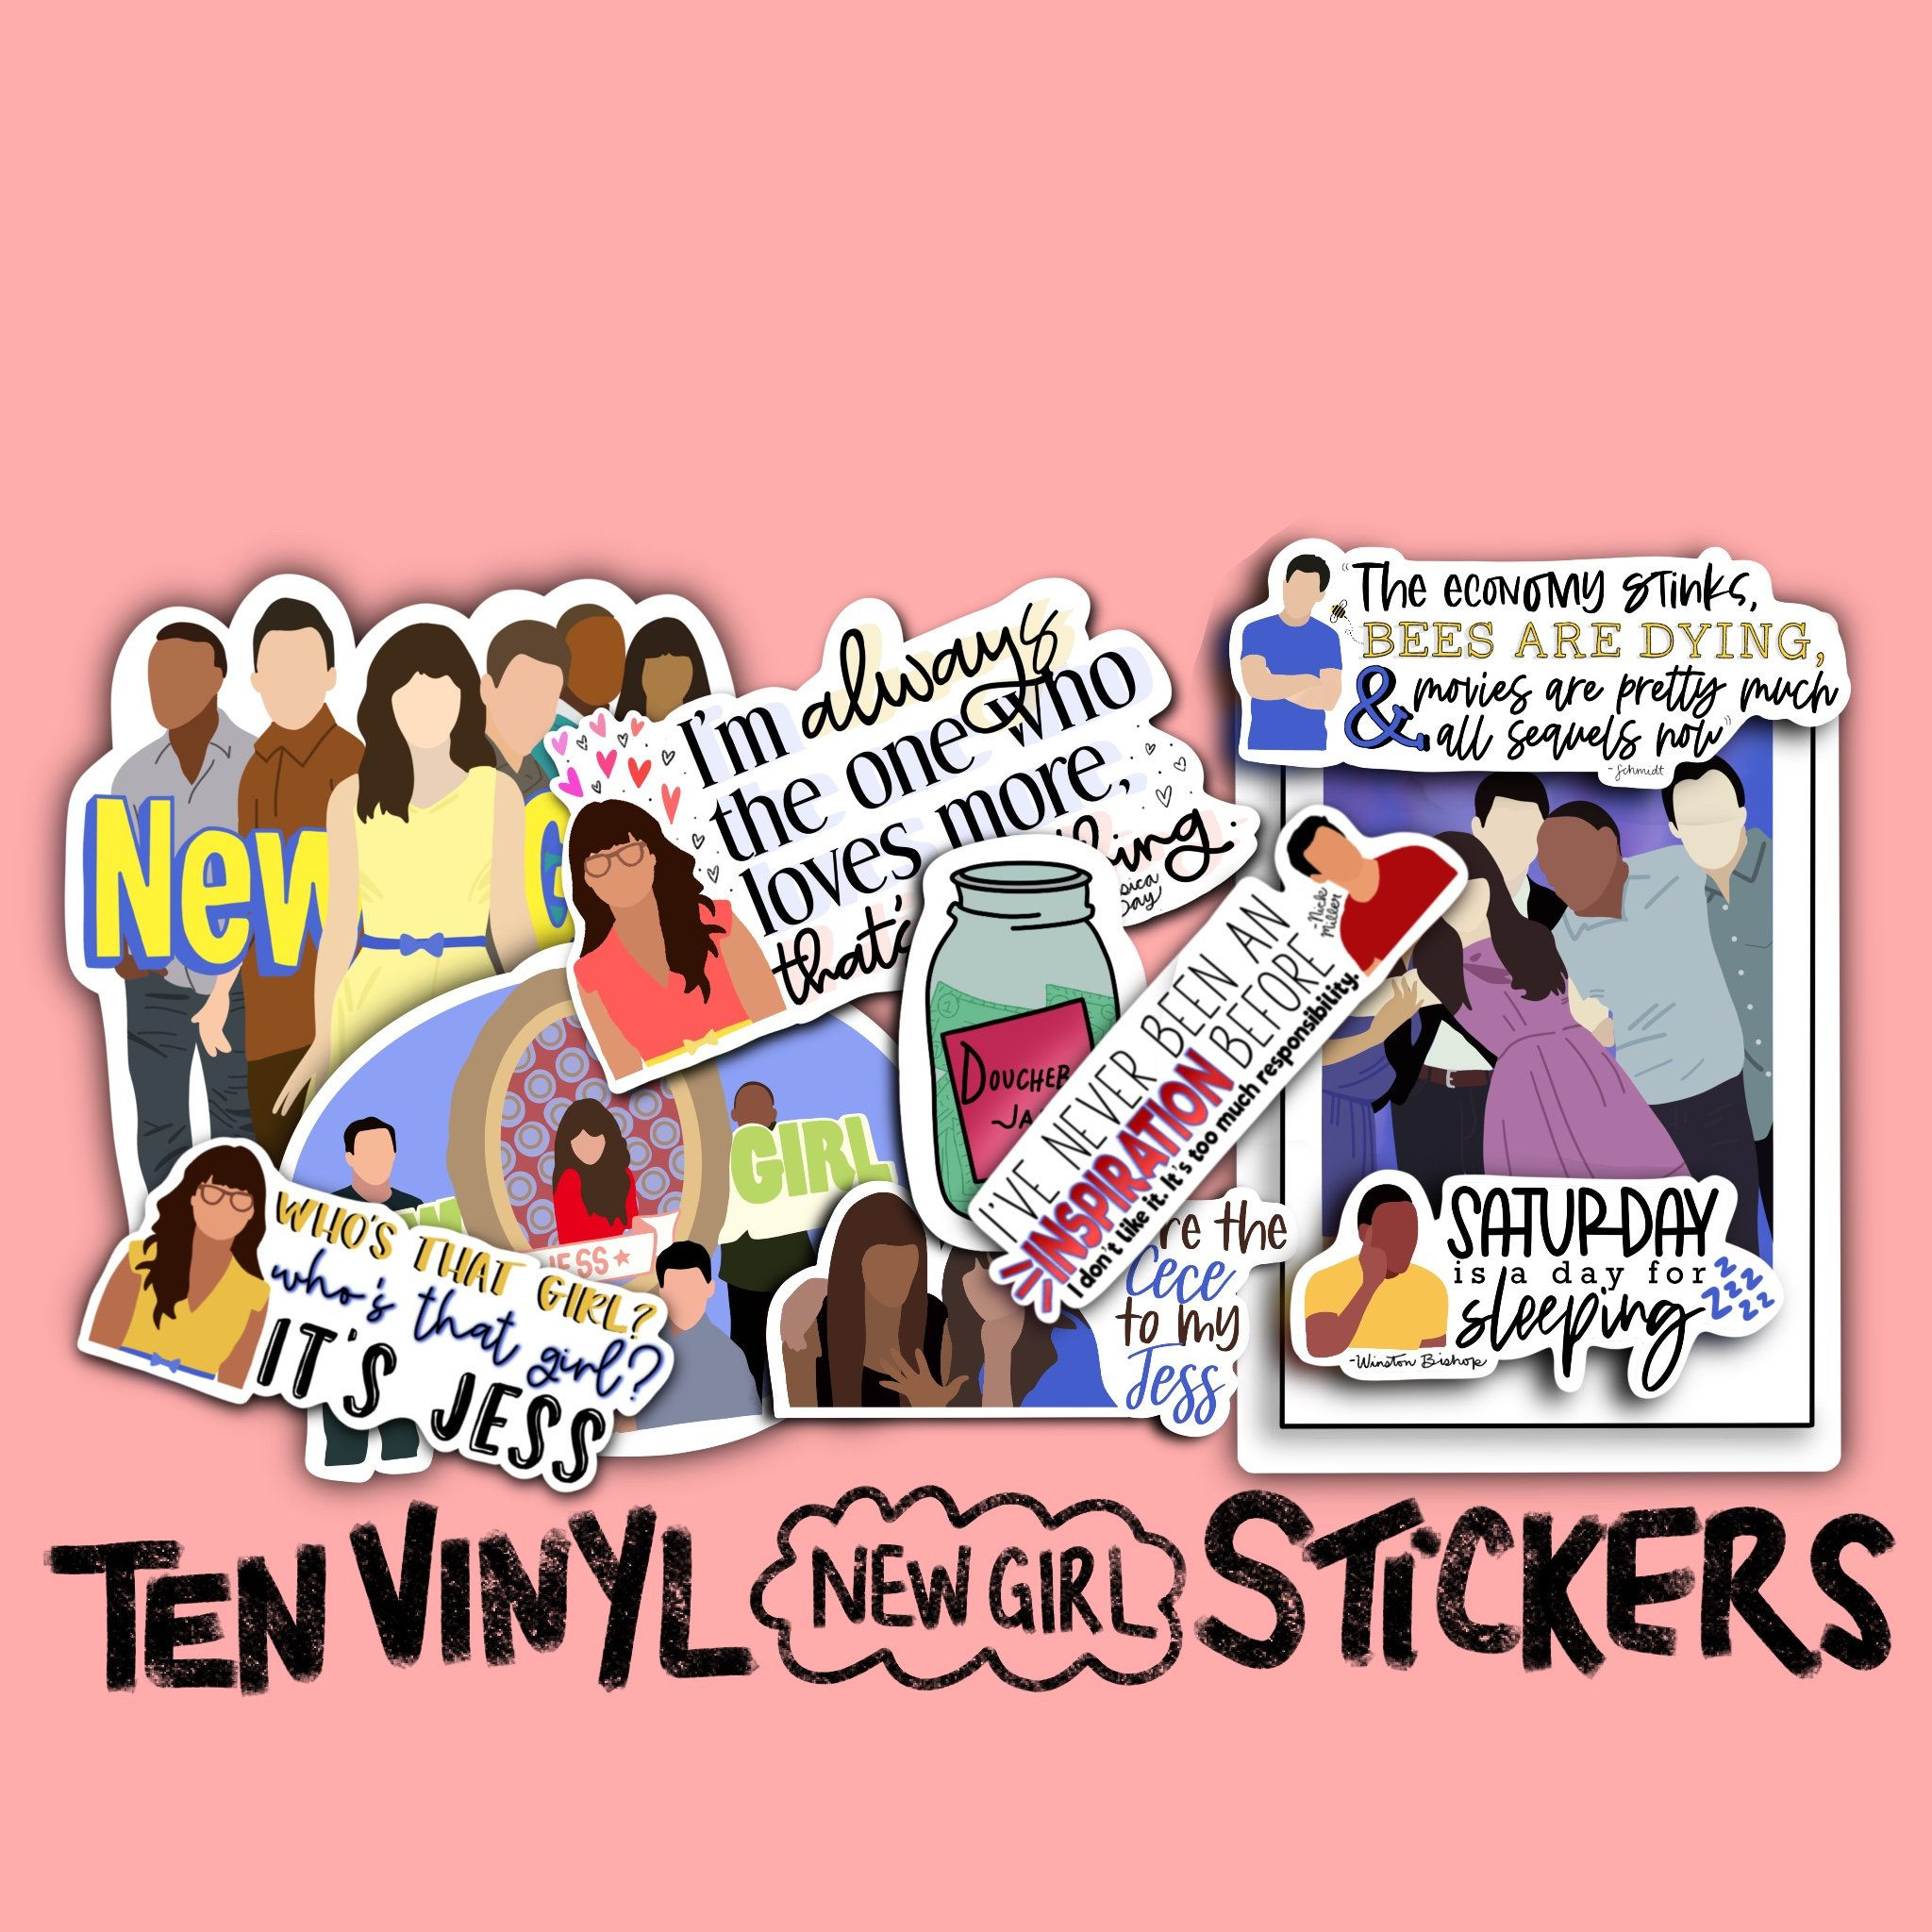 New Girl Vinyl Sticker Pack 10 Piece Etsy In 2020 Vinyl Sticker Vinyl Print Stickers